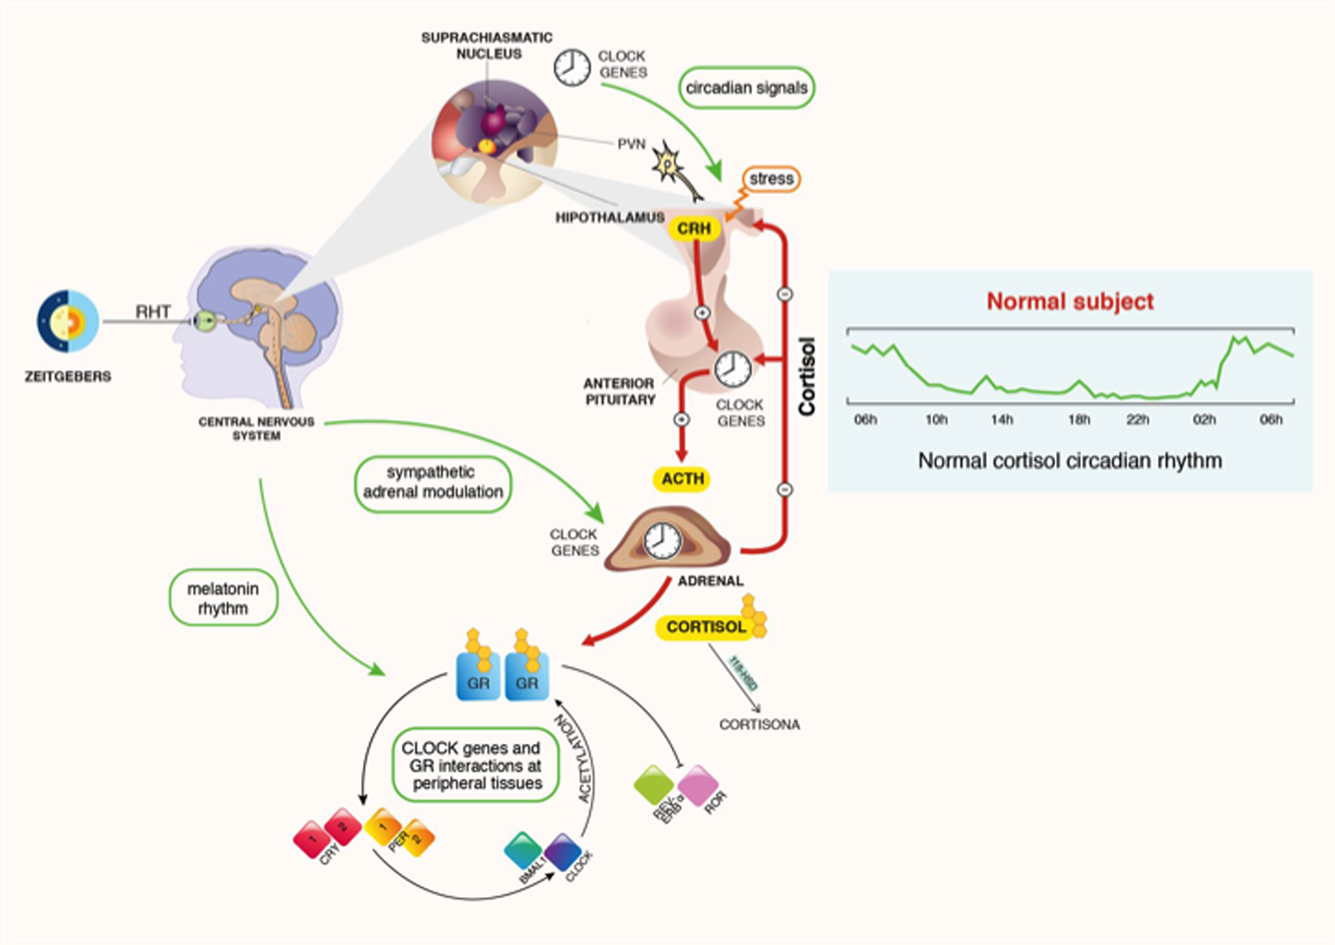 MECHANISMS IN ENDOCRINOLOGY: A sense of time of the glucocorticoid